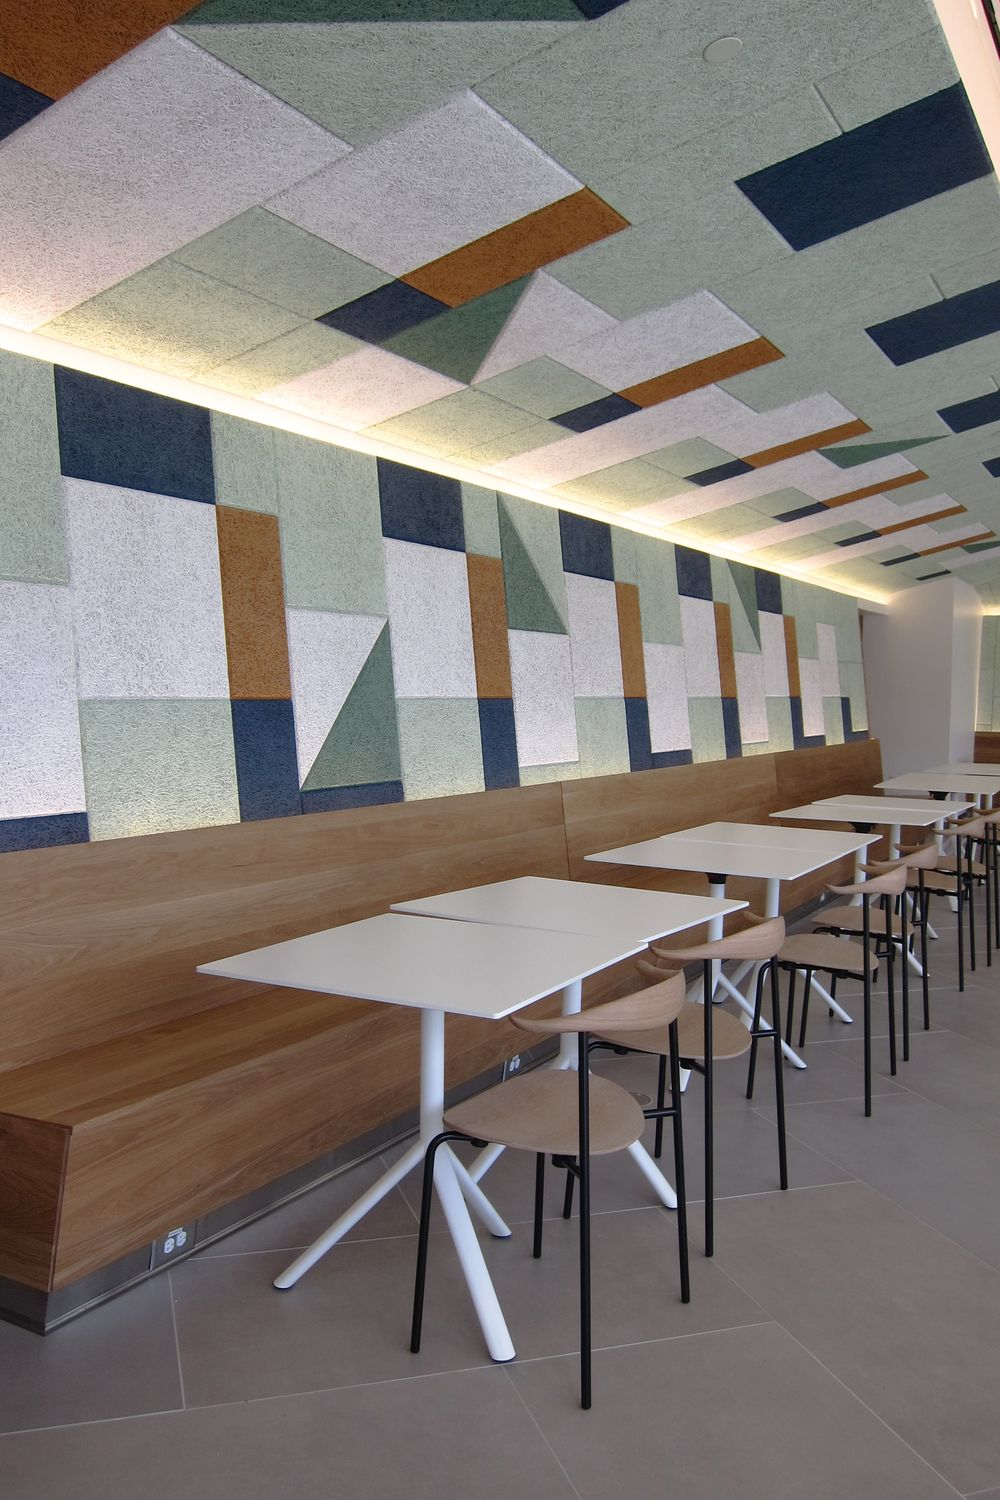 BAUX Acoustic Tiles Add Some Colourful Geometry In The New EF School, Boston U2026